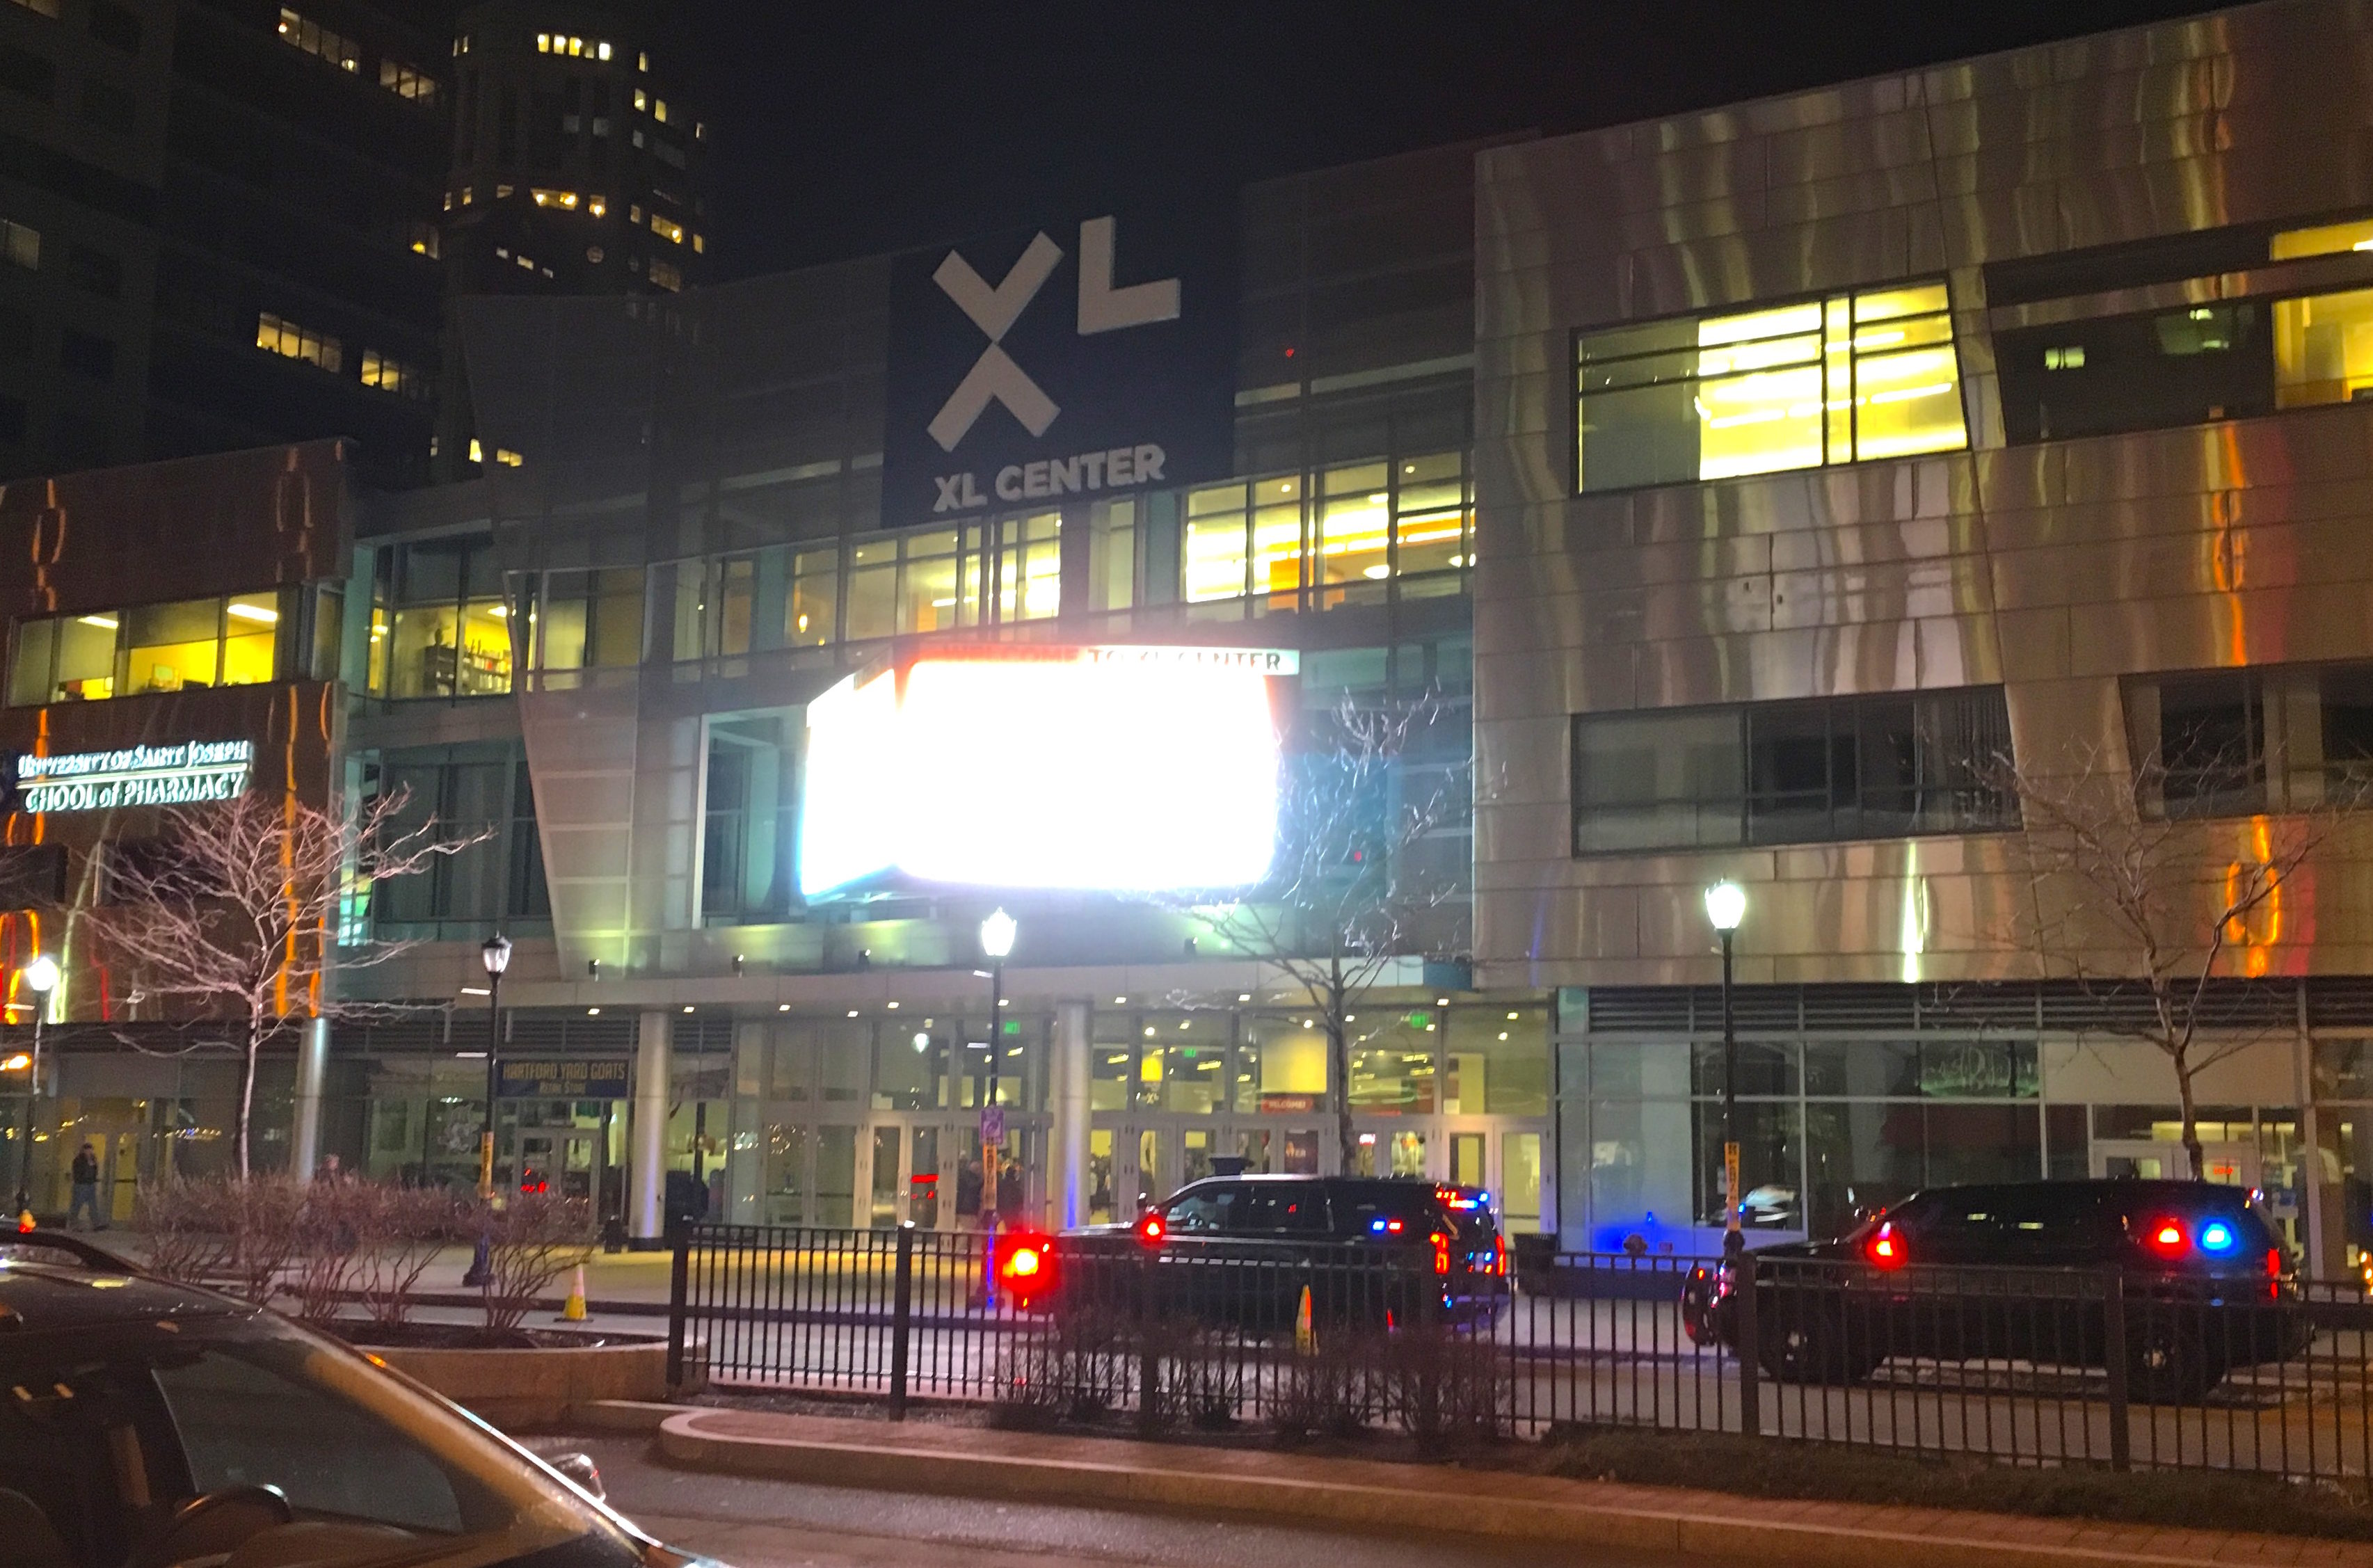 Plan for XL Center to test value of entertainment